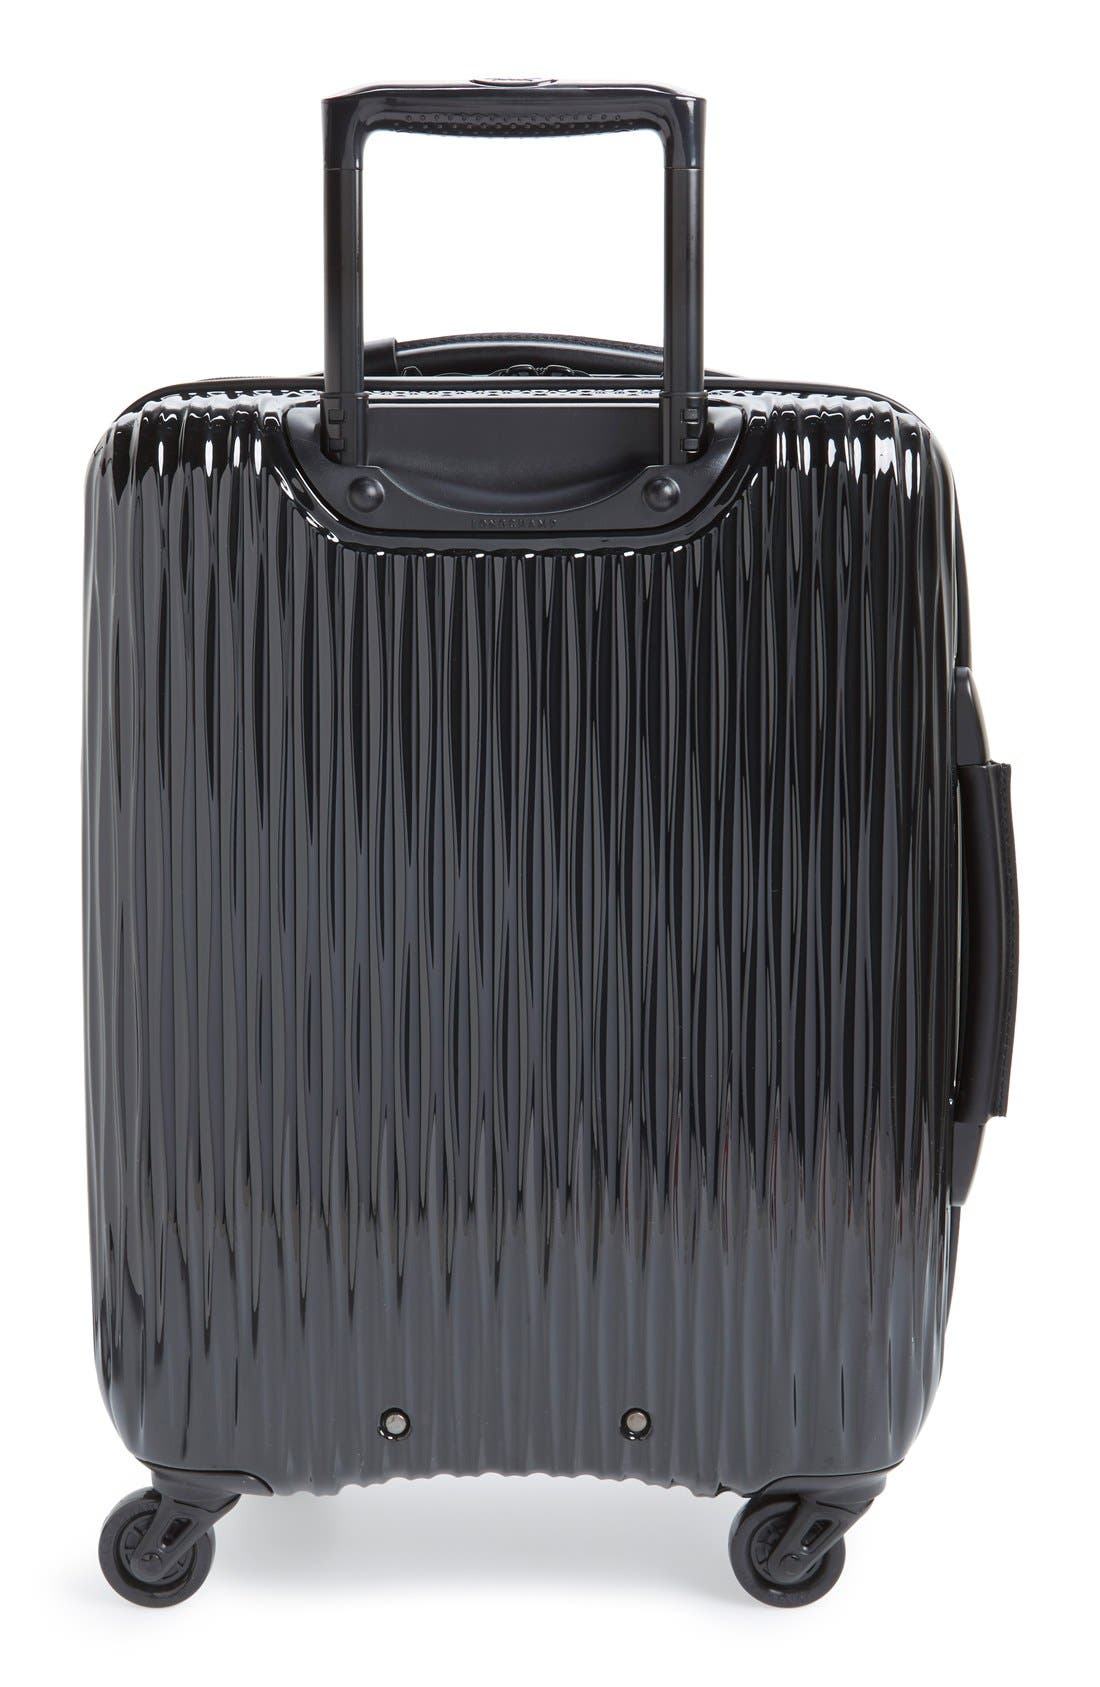 'Fairval' Four-Wheeled Hard Shell Suitcase,                             Alternate thumbnail 2, color,                             Black